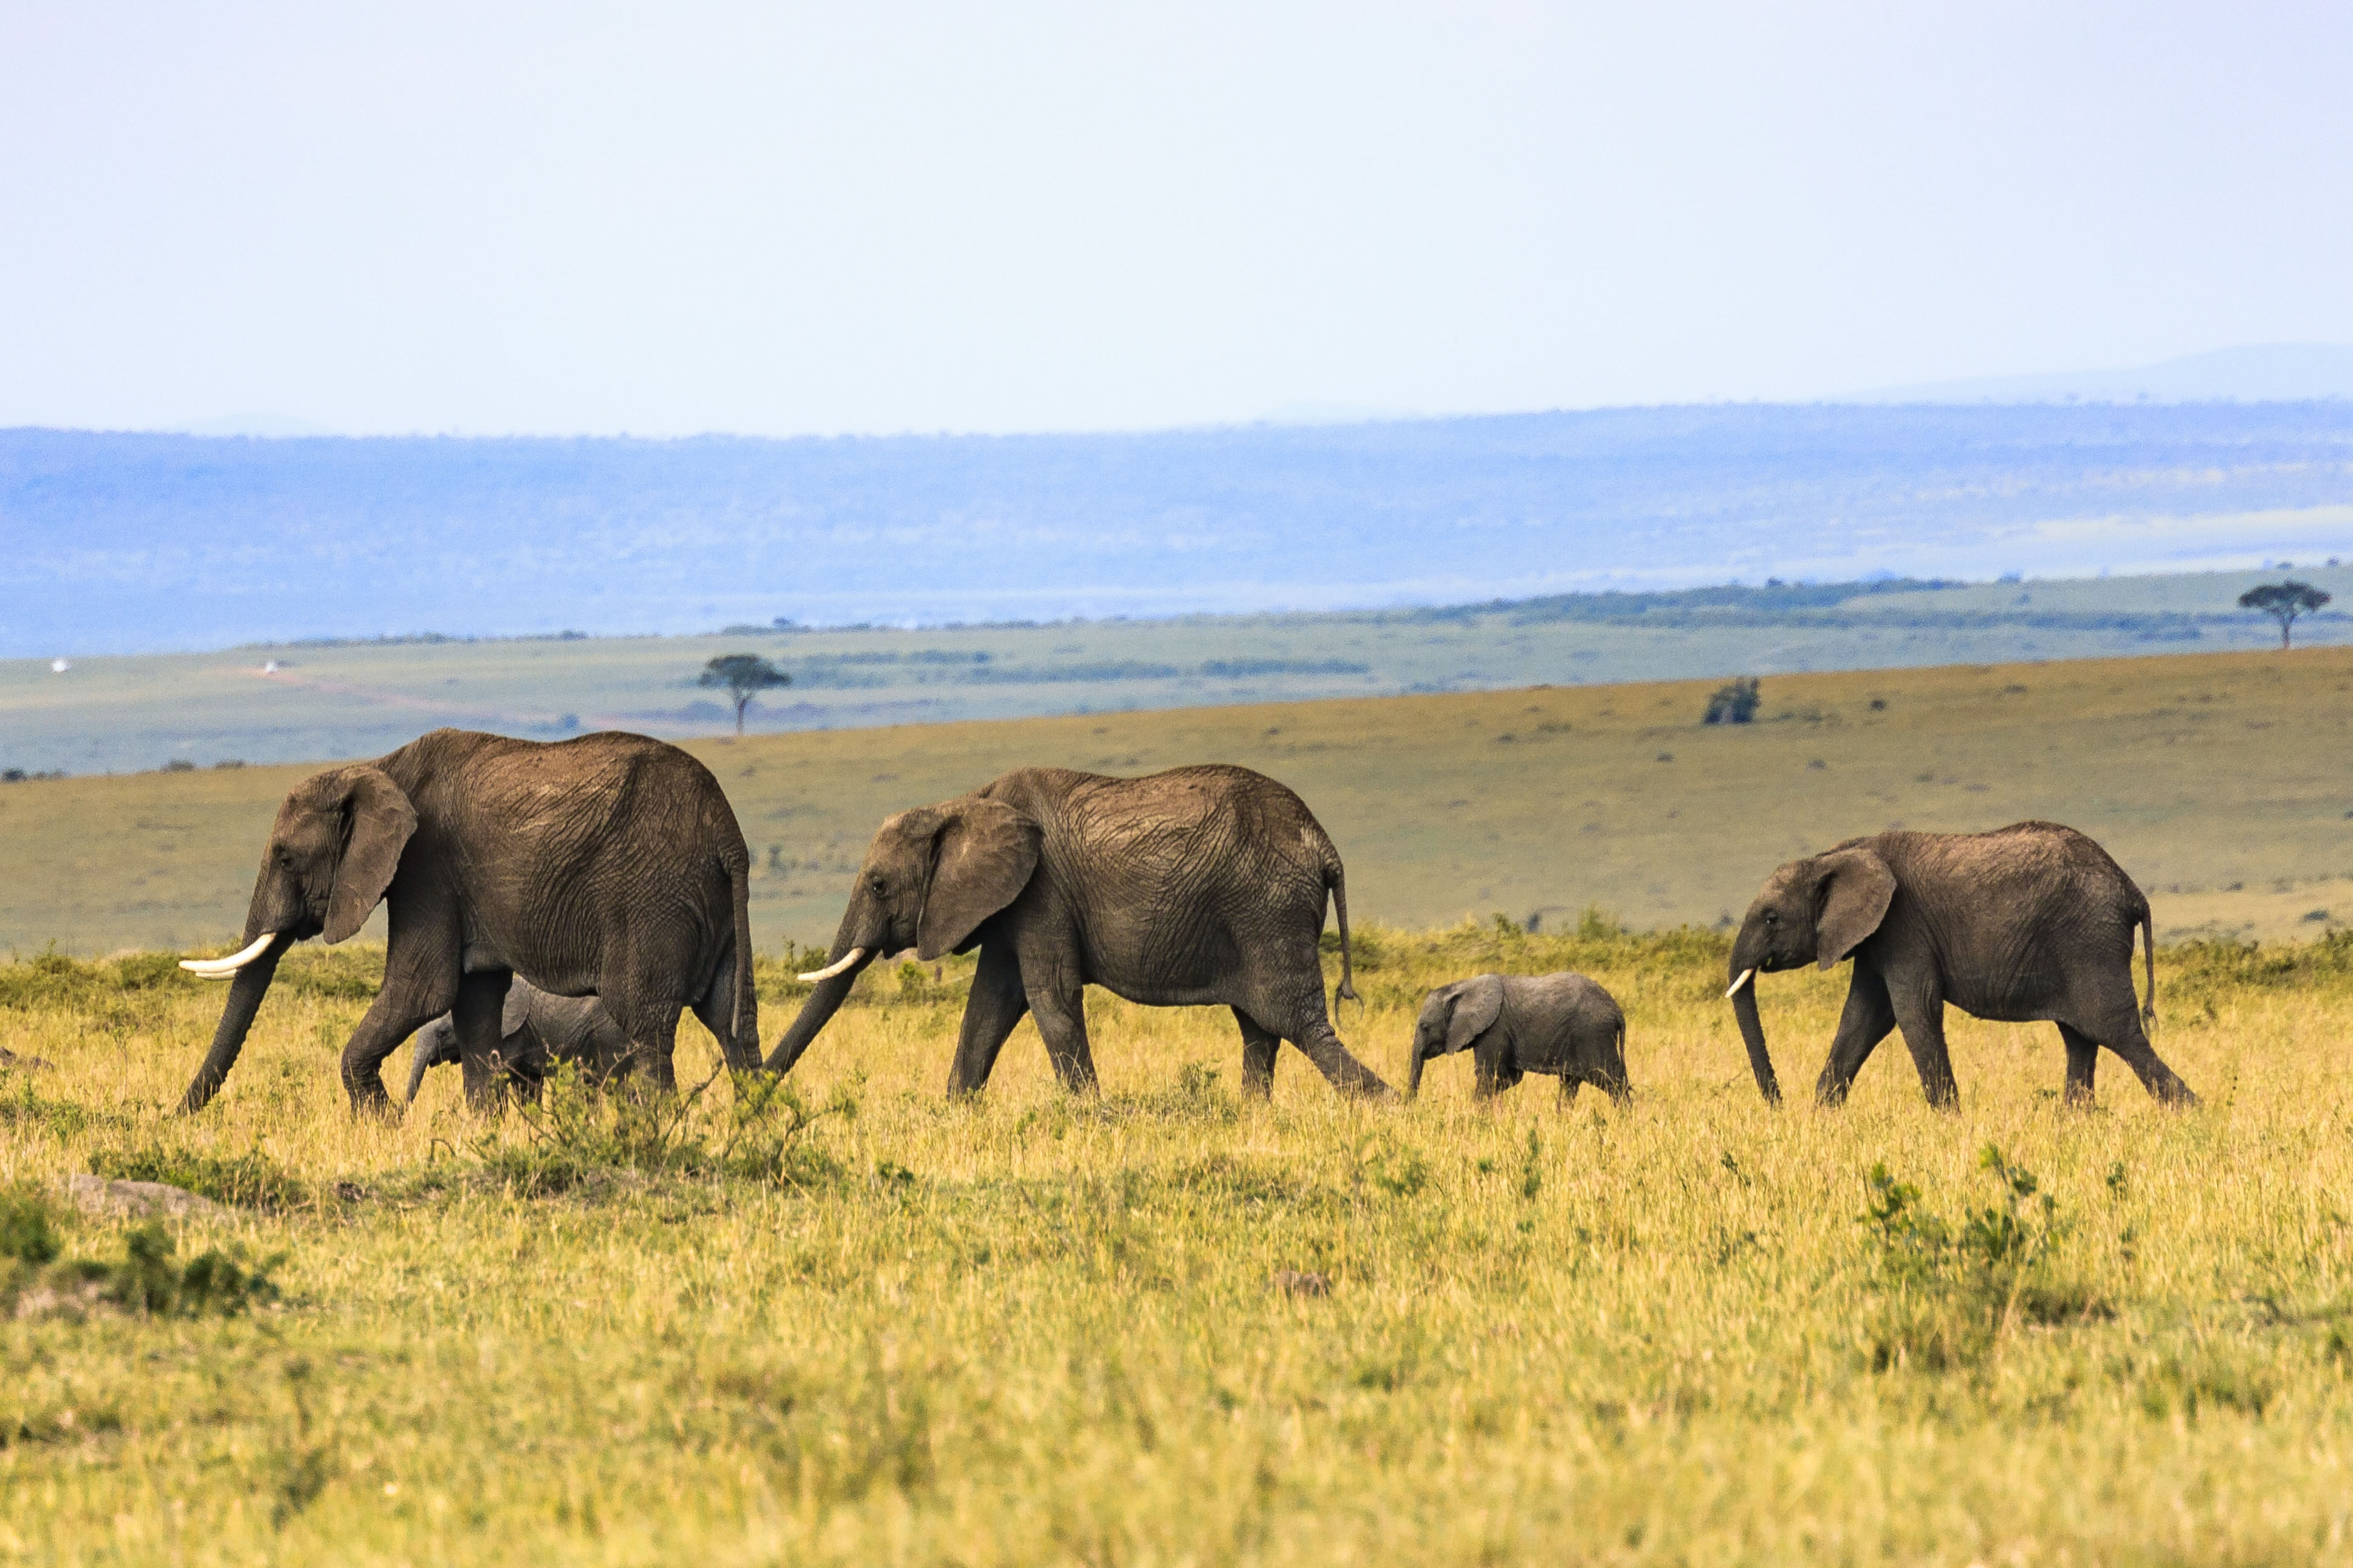 A small herd of elephants walking through tall grass